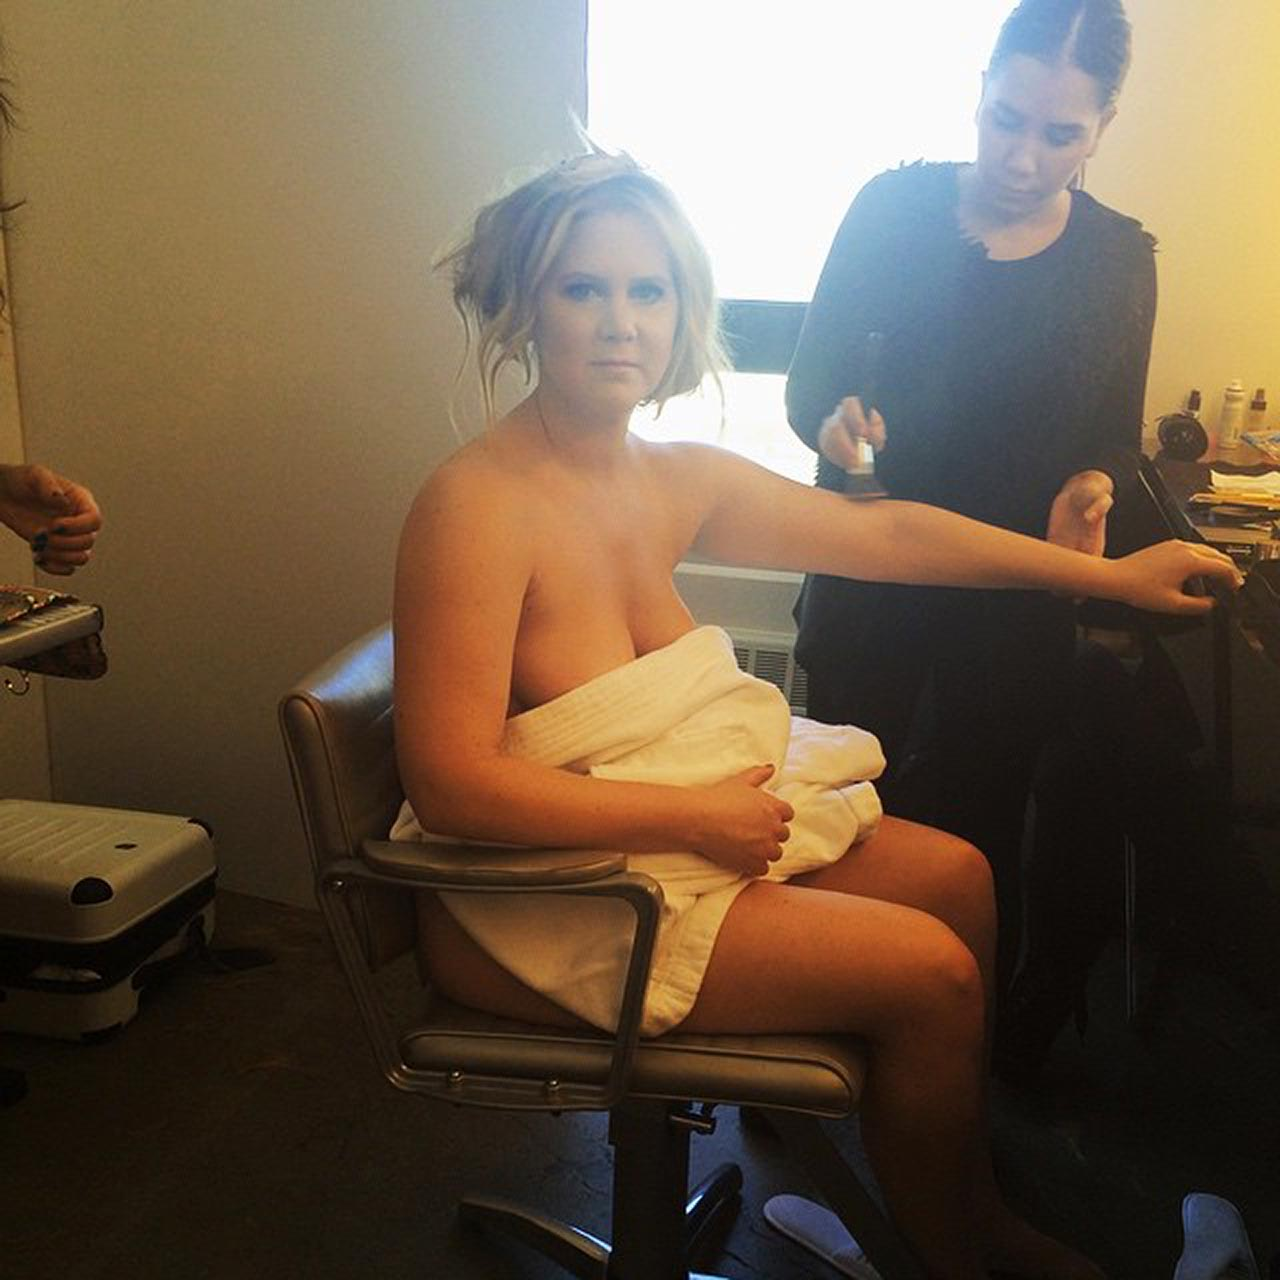 Amy Schumer Sex Video amy schumer naked photos & videos - scandalpost